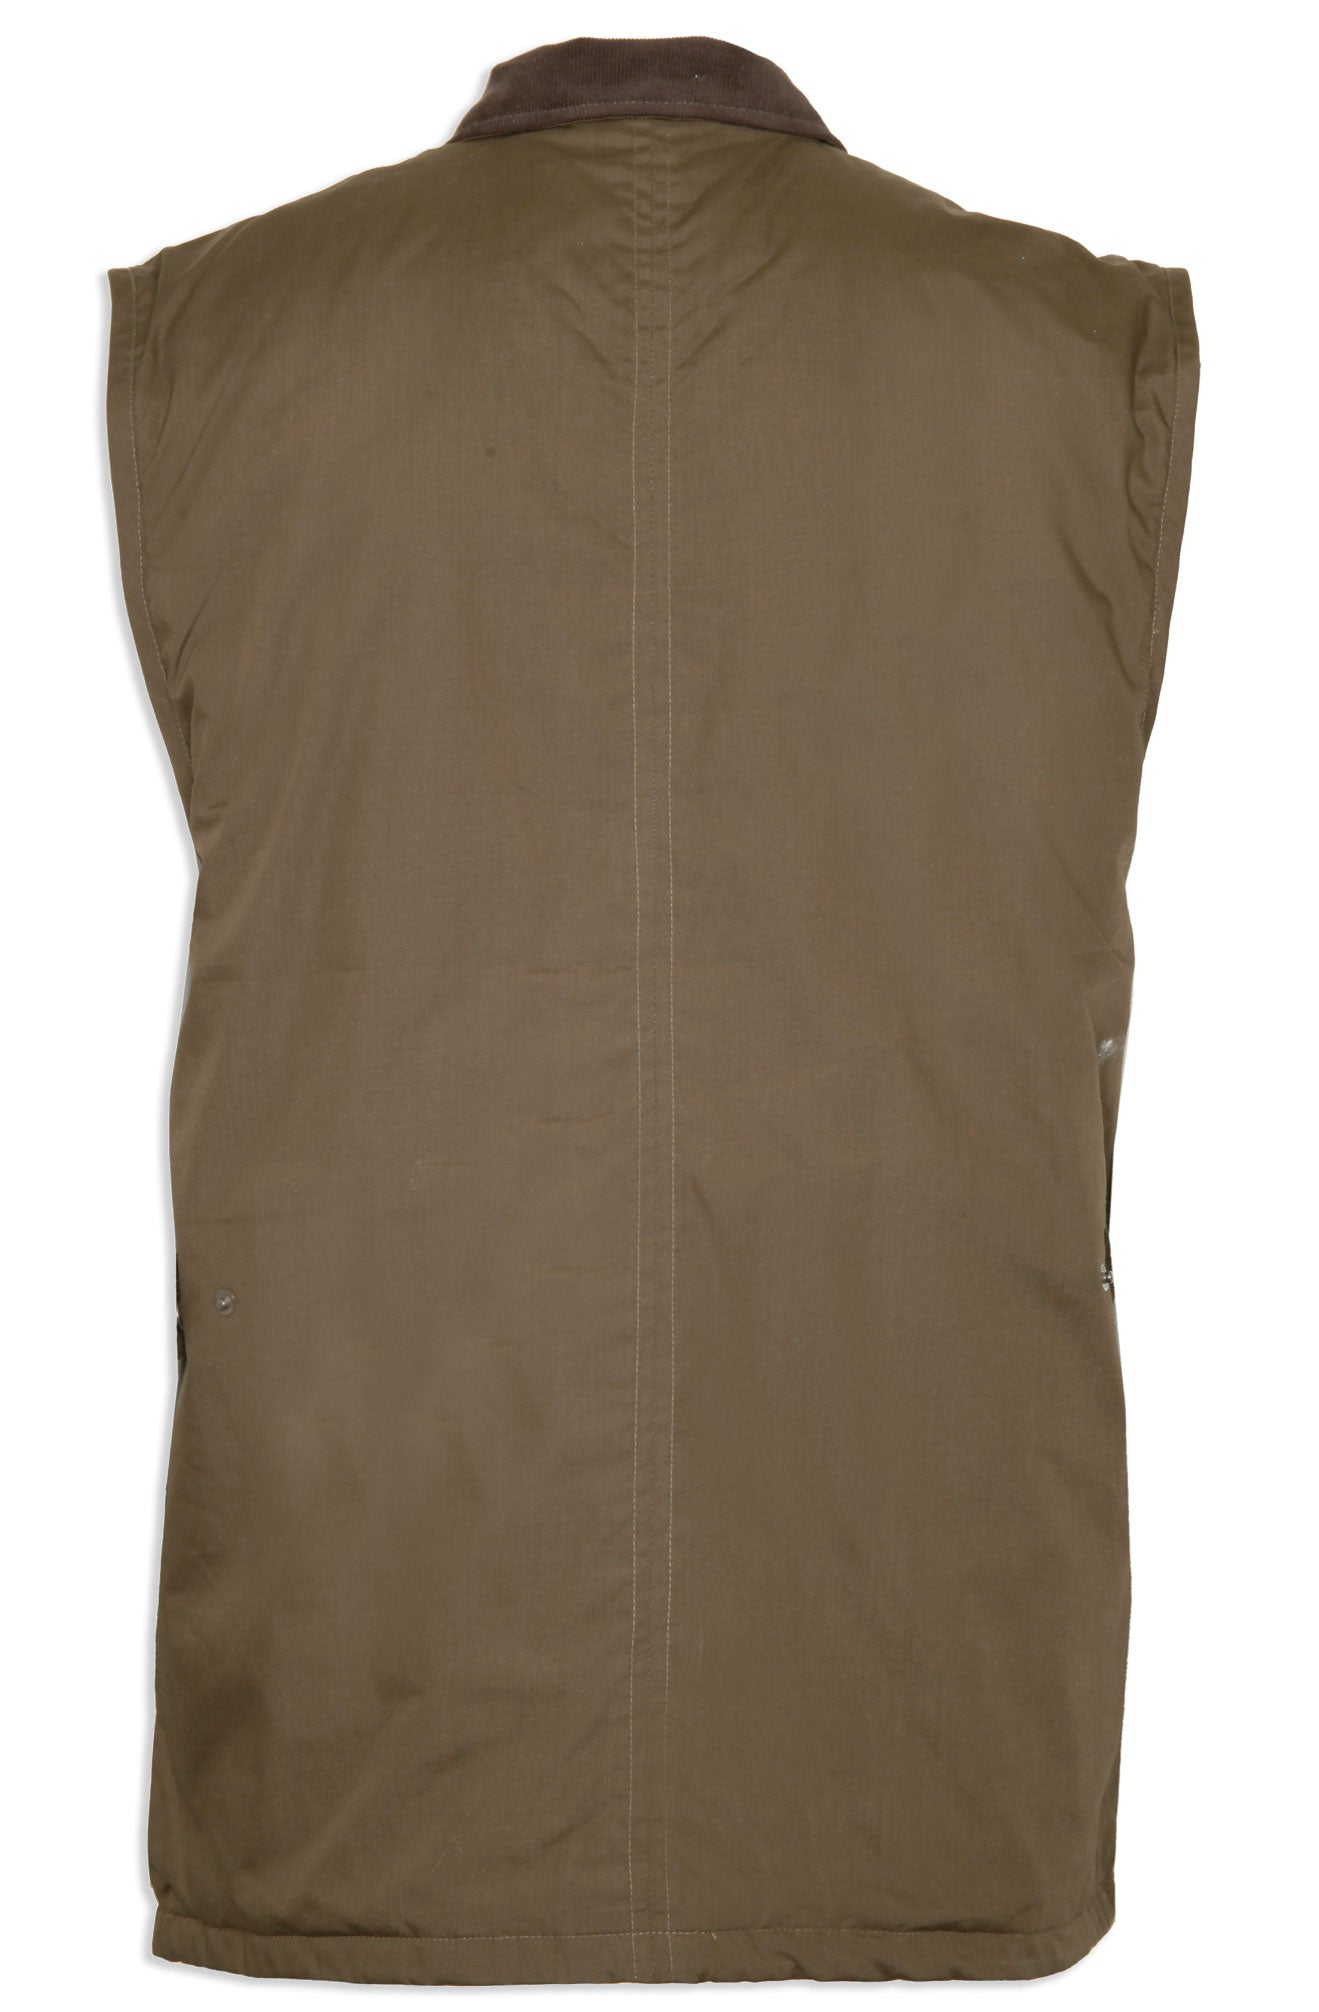 back view olive Silverdale Multi Pocket Waistcoat from Champion Outdoor